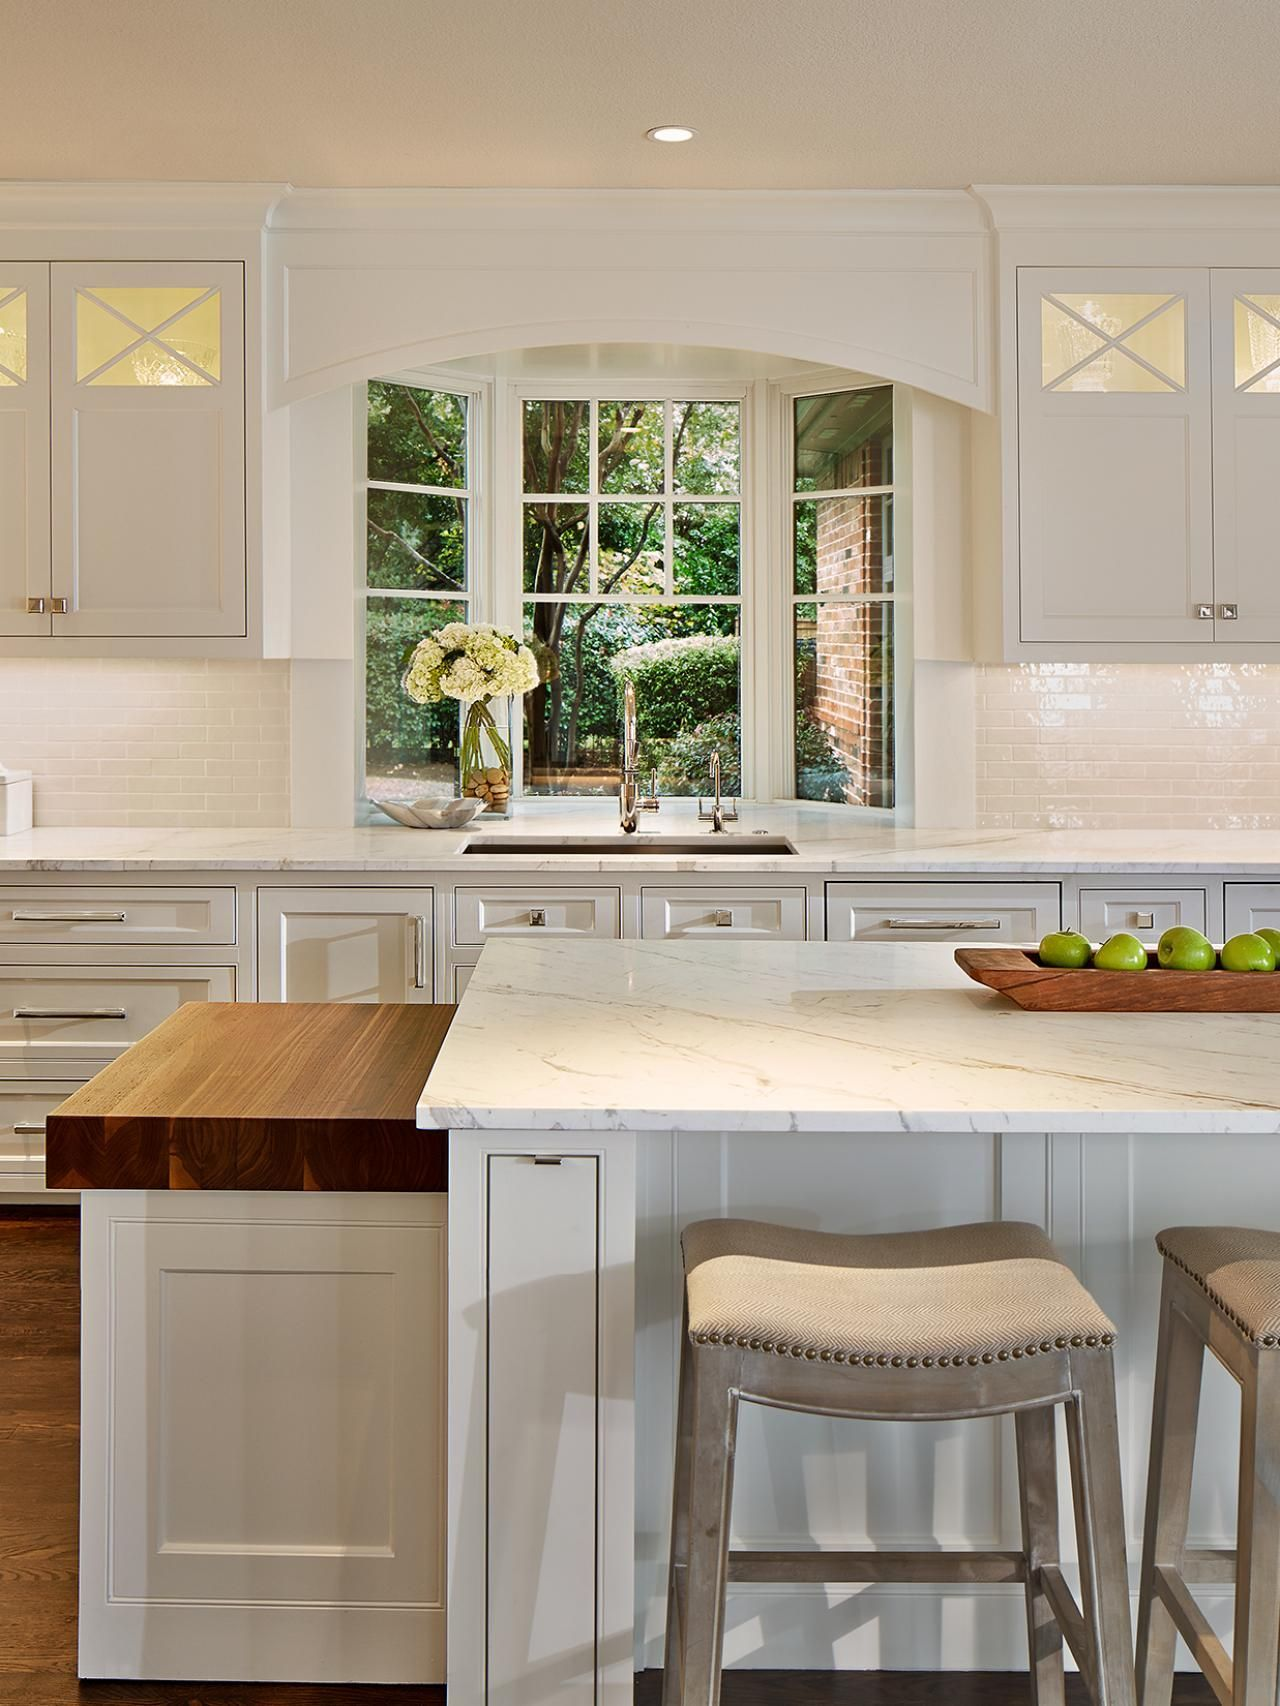 Shaker Style Kitchen Cabinets (20+ Ideas, Trends & How To ...